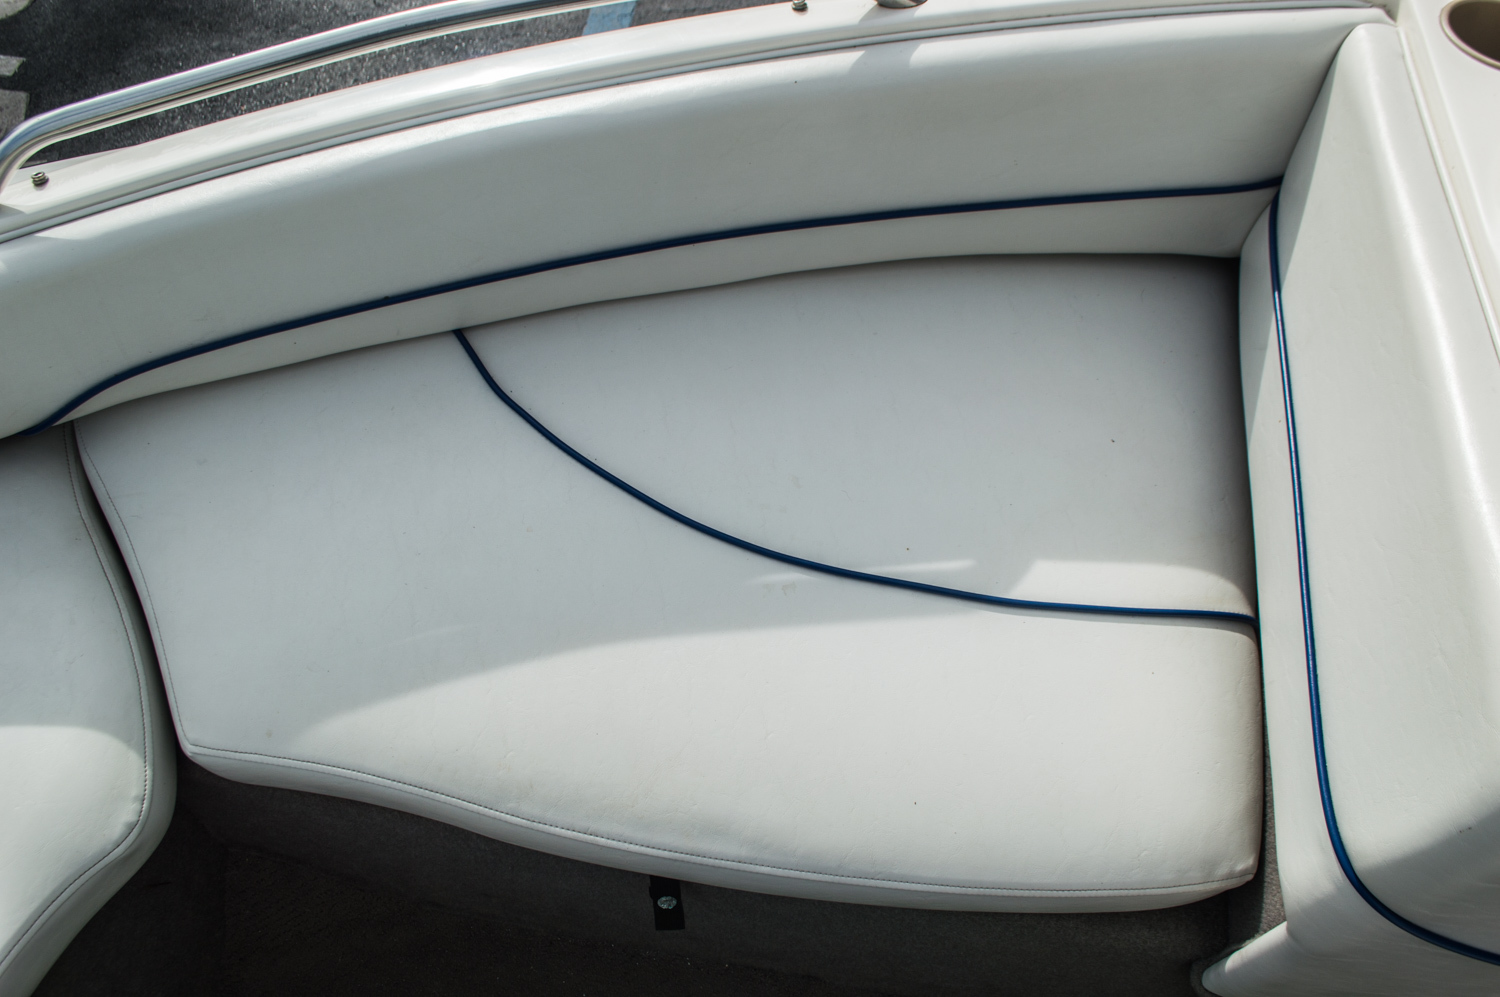 Thumbnail 14 for Used 2005 Bayliner 195 Classic boat for sale in West Palm Beach, FL